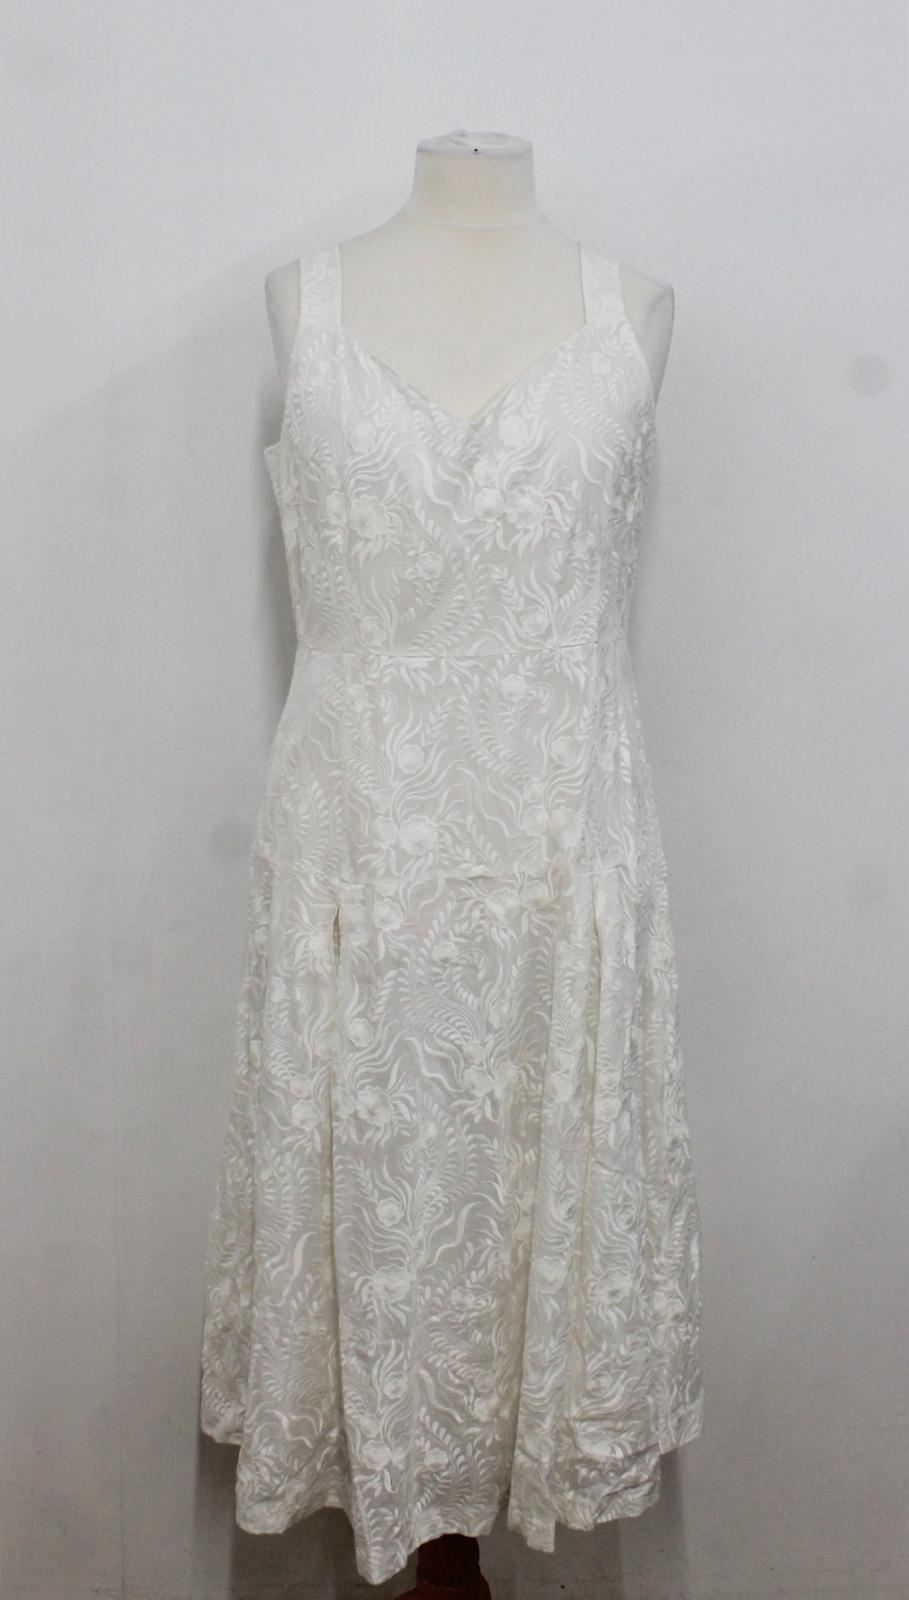 BNWT-FINERY-LONDON-Ladies-White-Floral-Embroidered-Sleeveless-Dress-Size-UK18